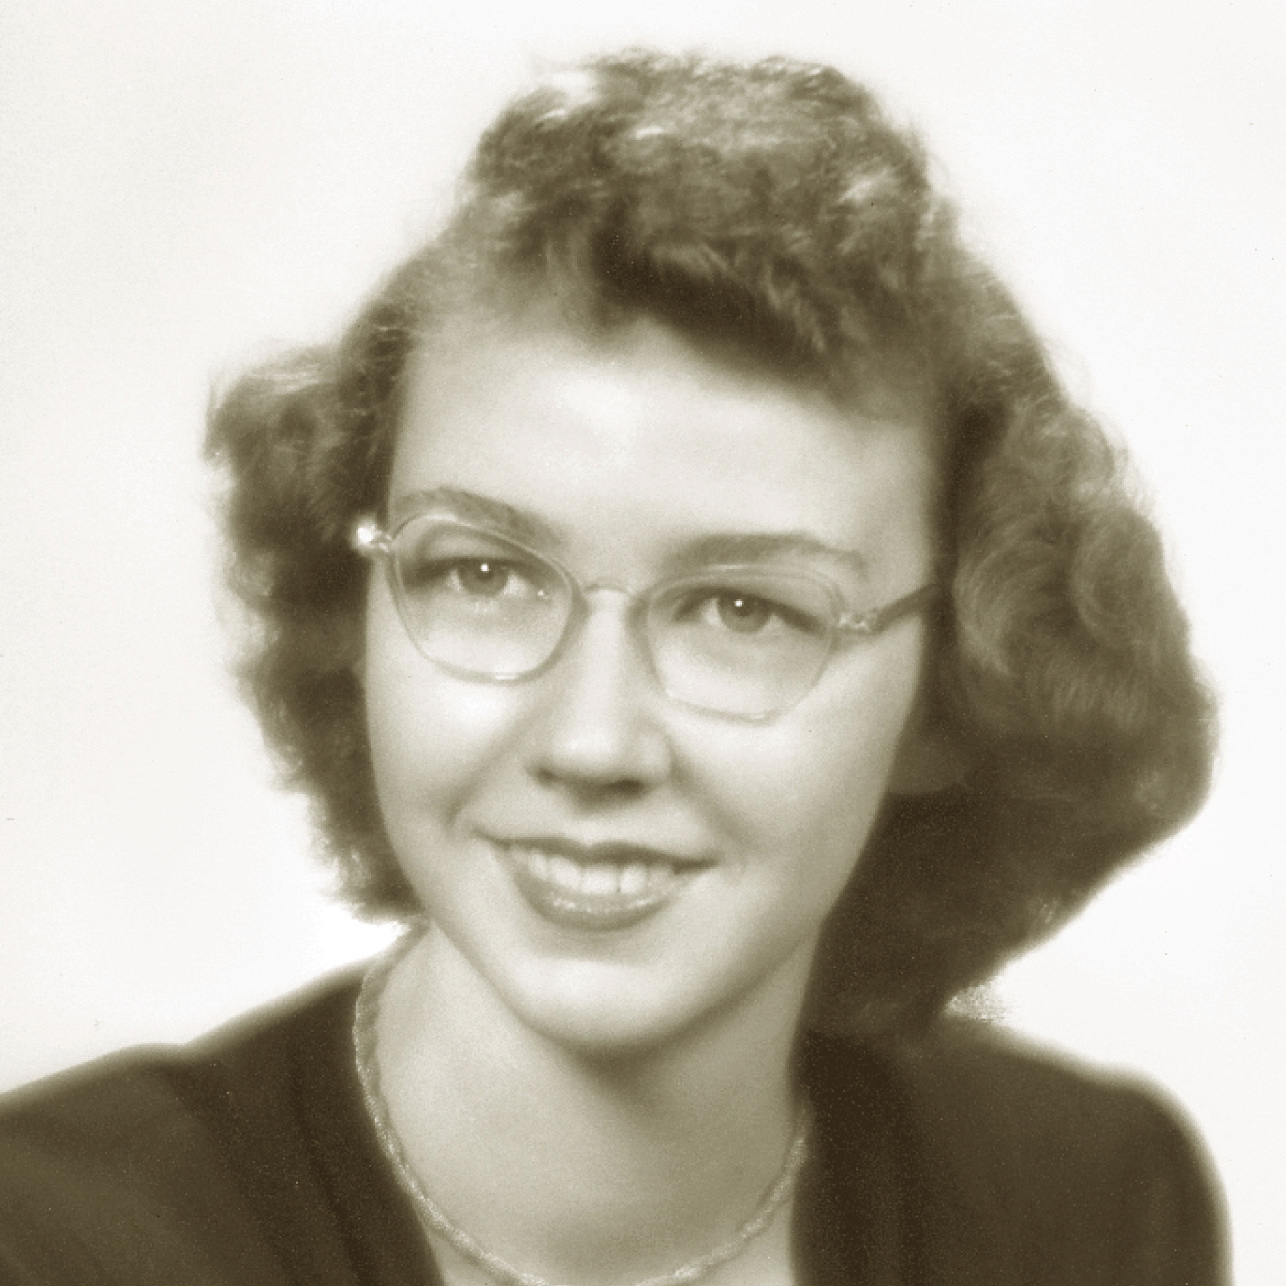 Flannery O'Connor authored Wise Blood, The Violent Bear It Away and several short stories. She died in 1964.